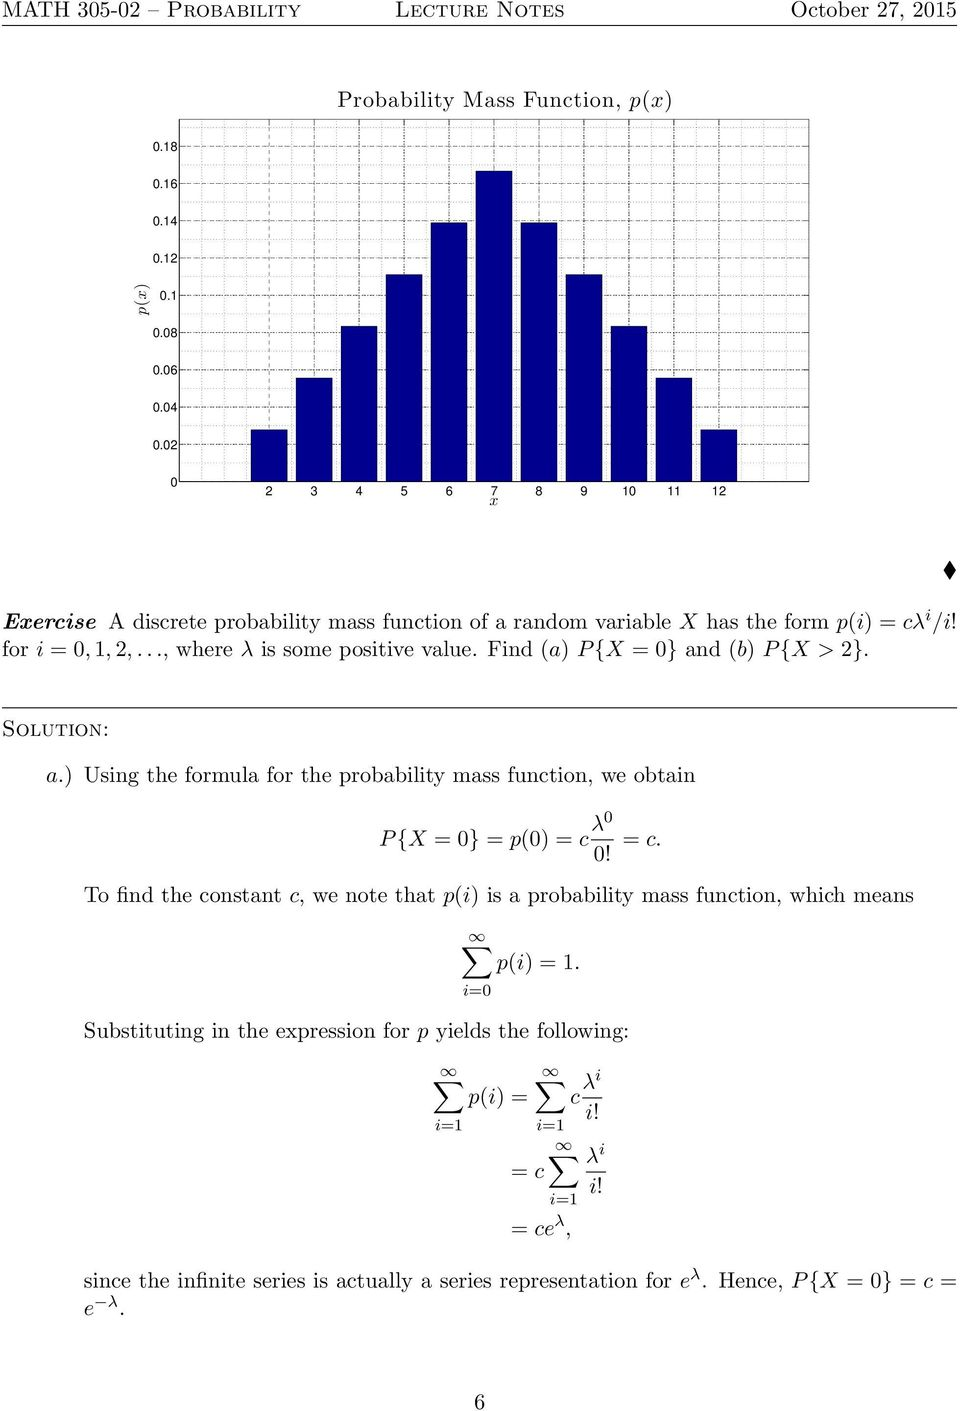 .., where λ is some positive value. Find (a) P {X = 0} and (b) P {X > 2}. a.) Using the formula for the probability mass function, we obtain P {X = 0} = p(0) = c